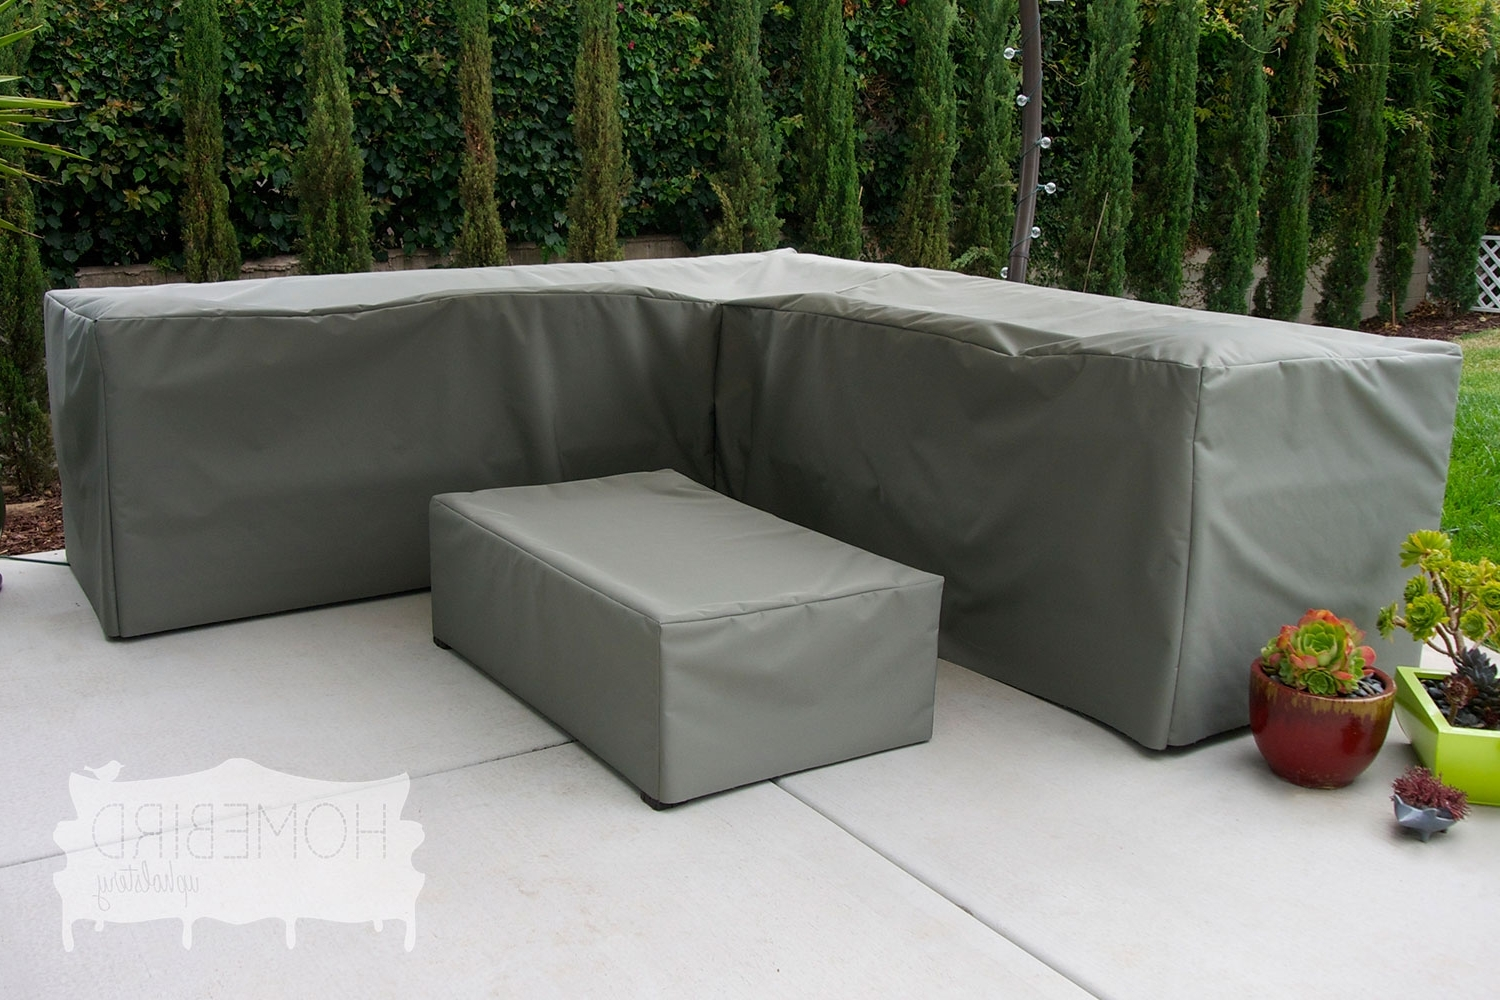 Widely Used Patio Conversation Sets With Covers In Patio Table: Covered Patio Seating Patio Cover Designs As Well As (View 19 of 20)